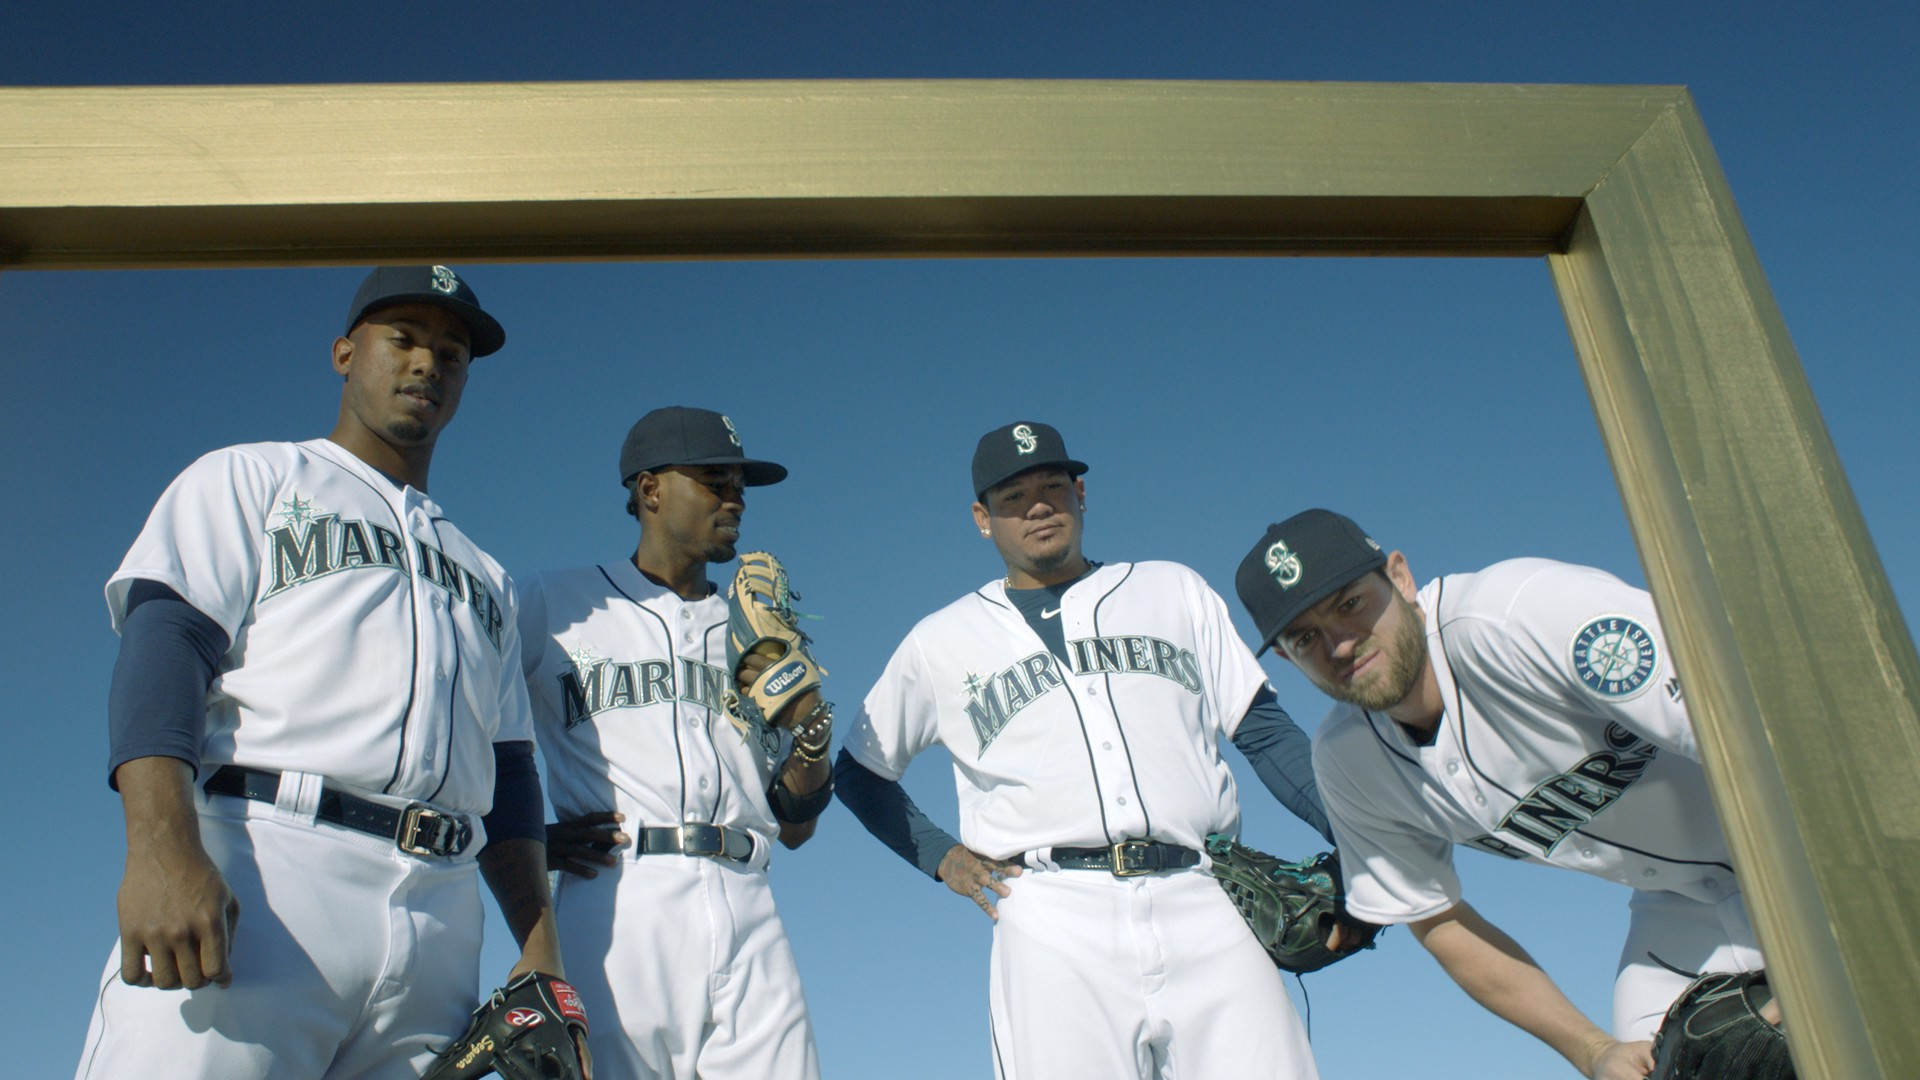 Mariners Release 2018 TV Commercials - From the Corner of